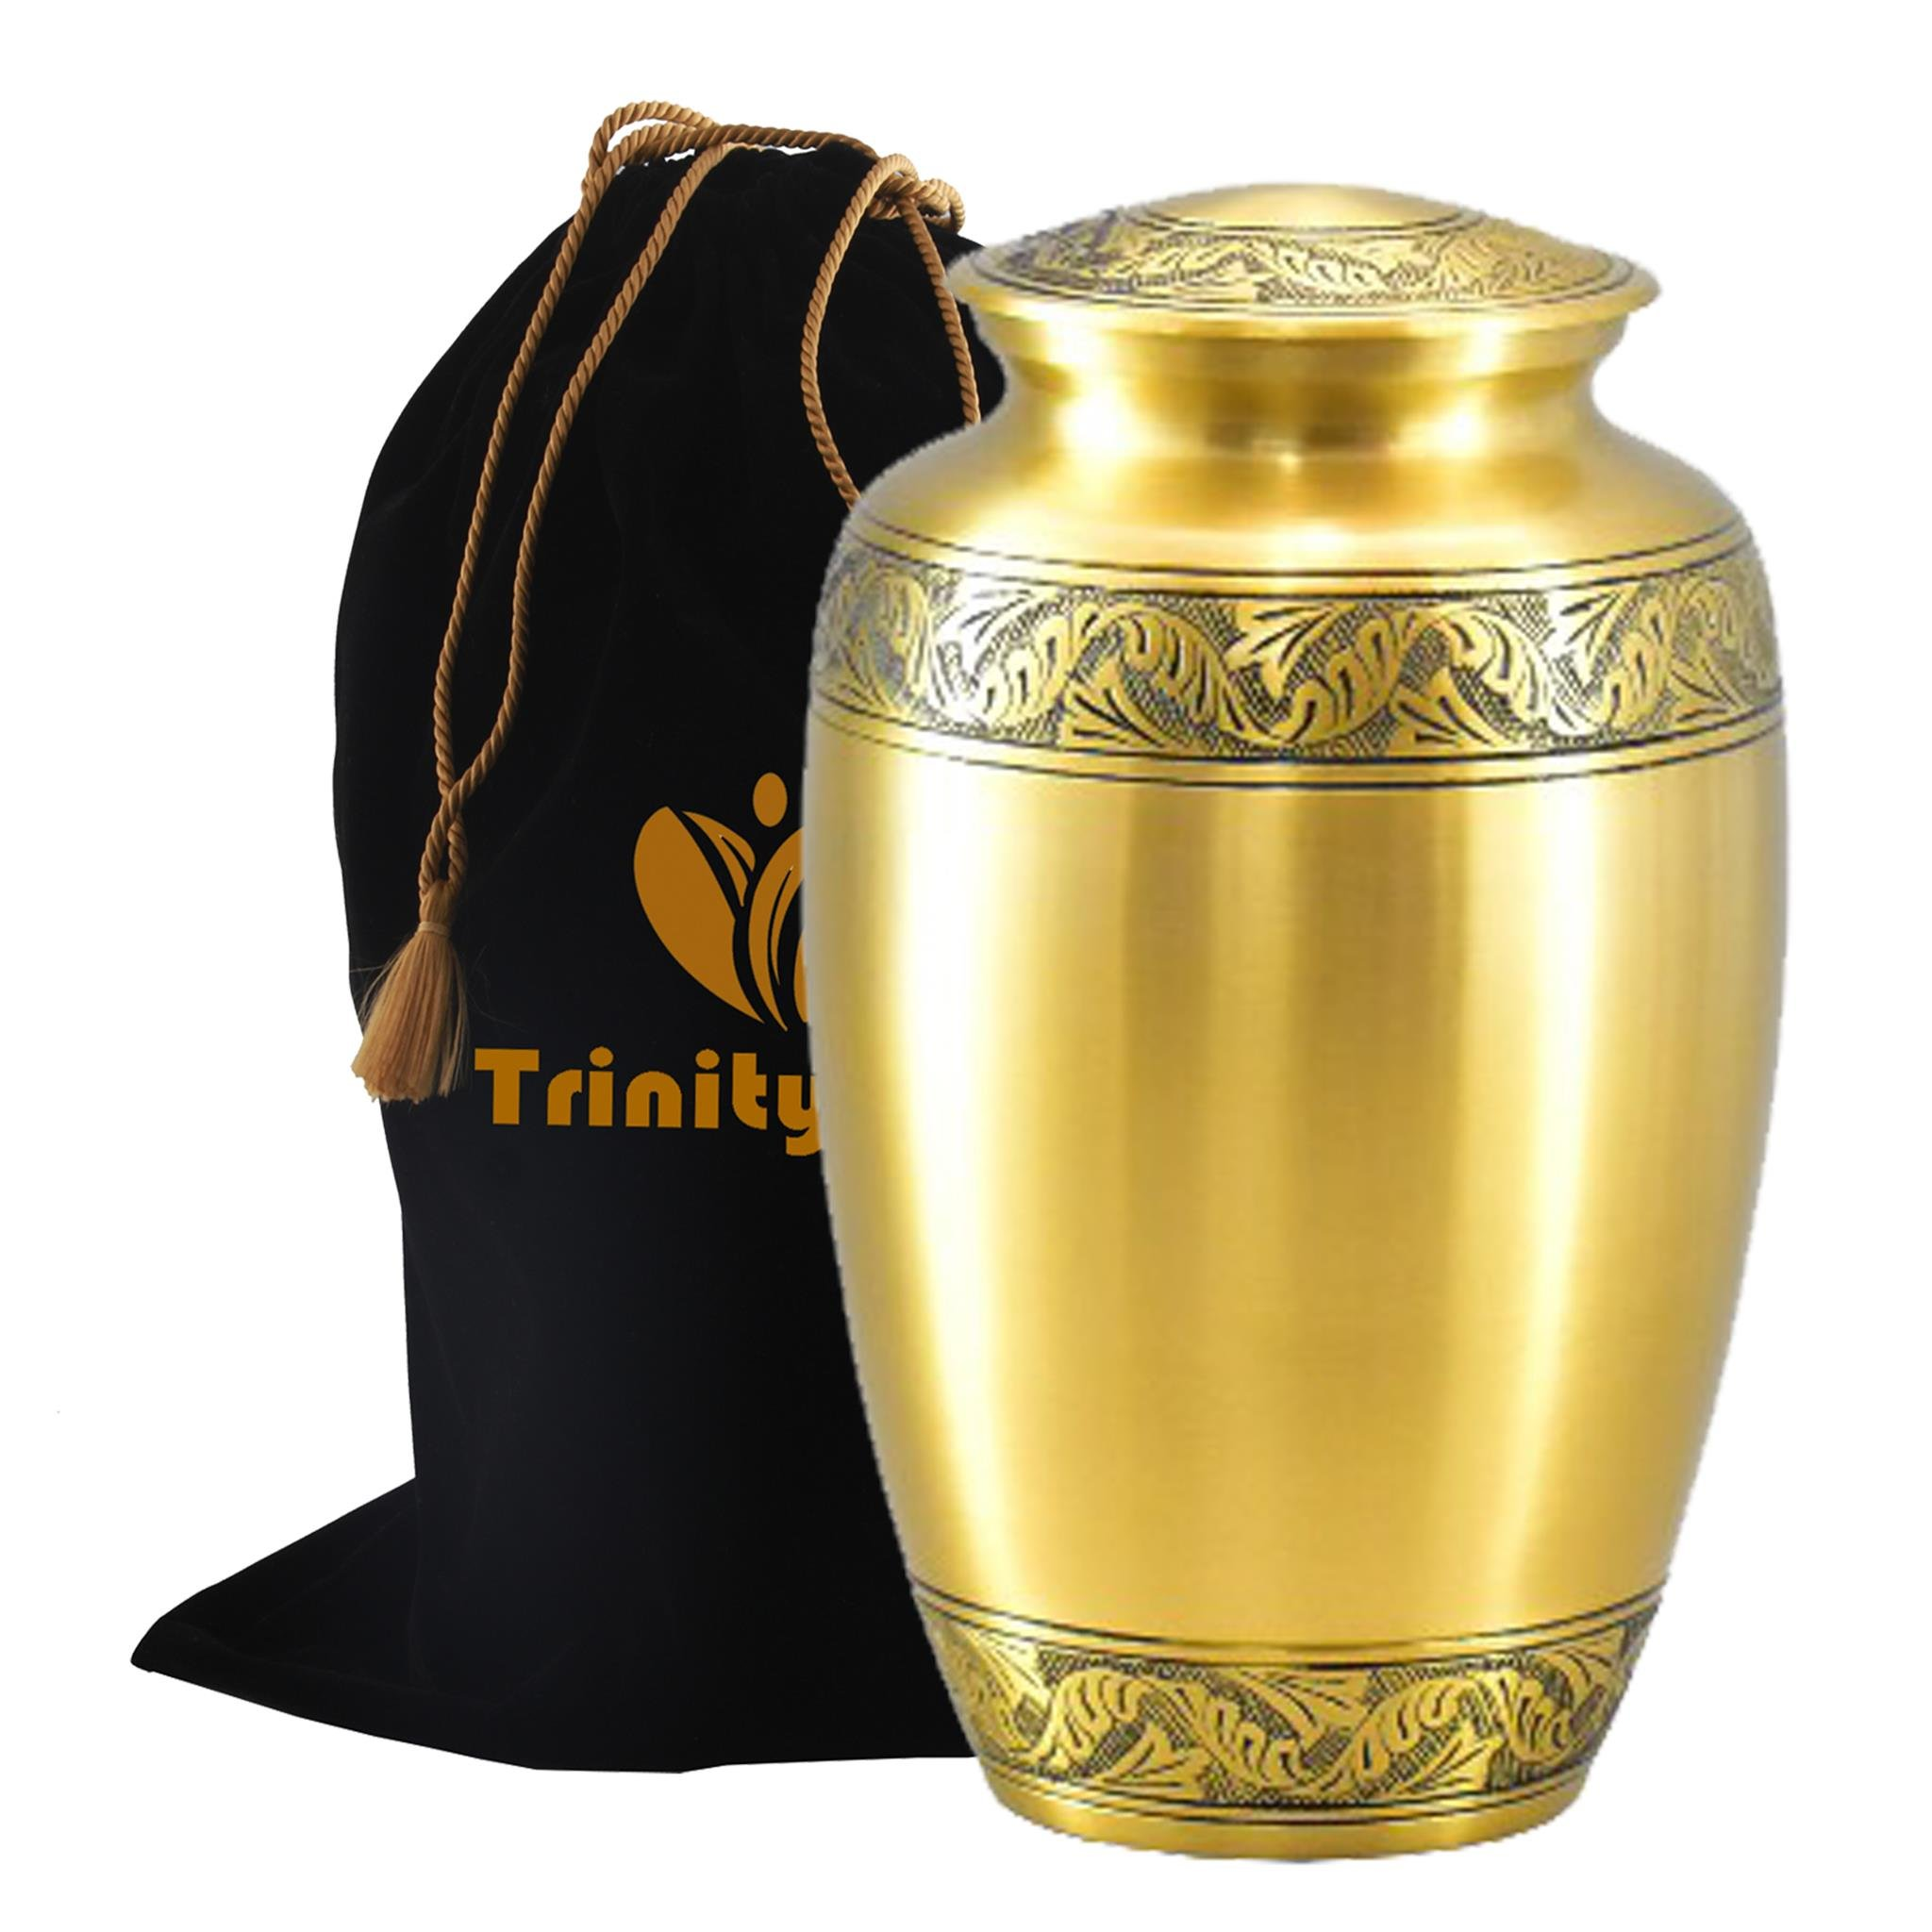 Classic Pewter Brass Cremation Urn - Beautifully Handcrafted Adult Funeral Urn - Solid Brass Funeral Urn - Affordable Urn for Human Ashes with Free Velvet Bag by Trinityurns